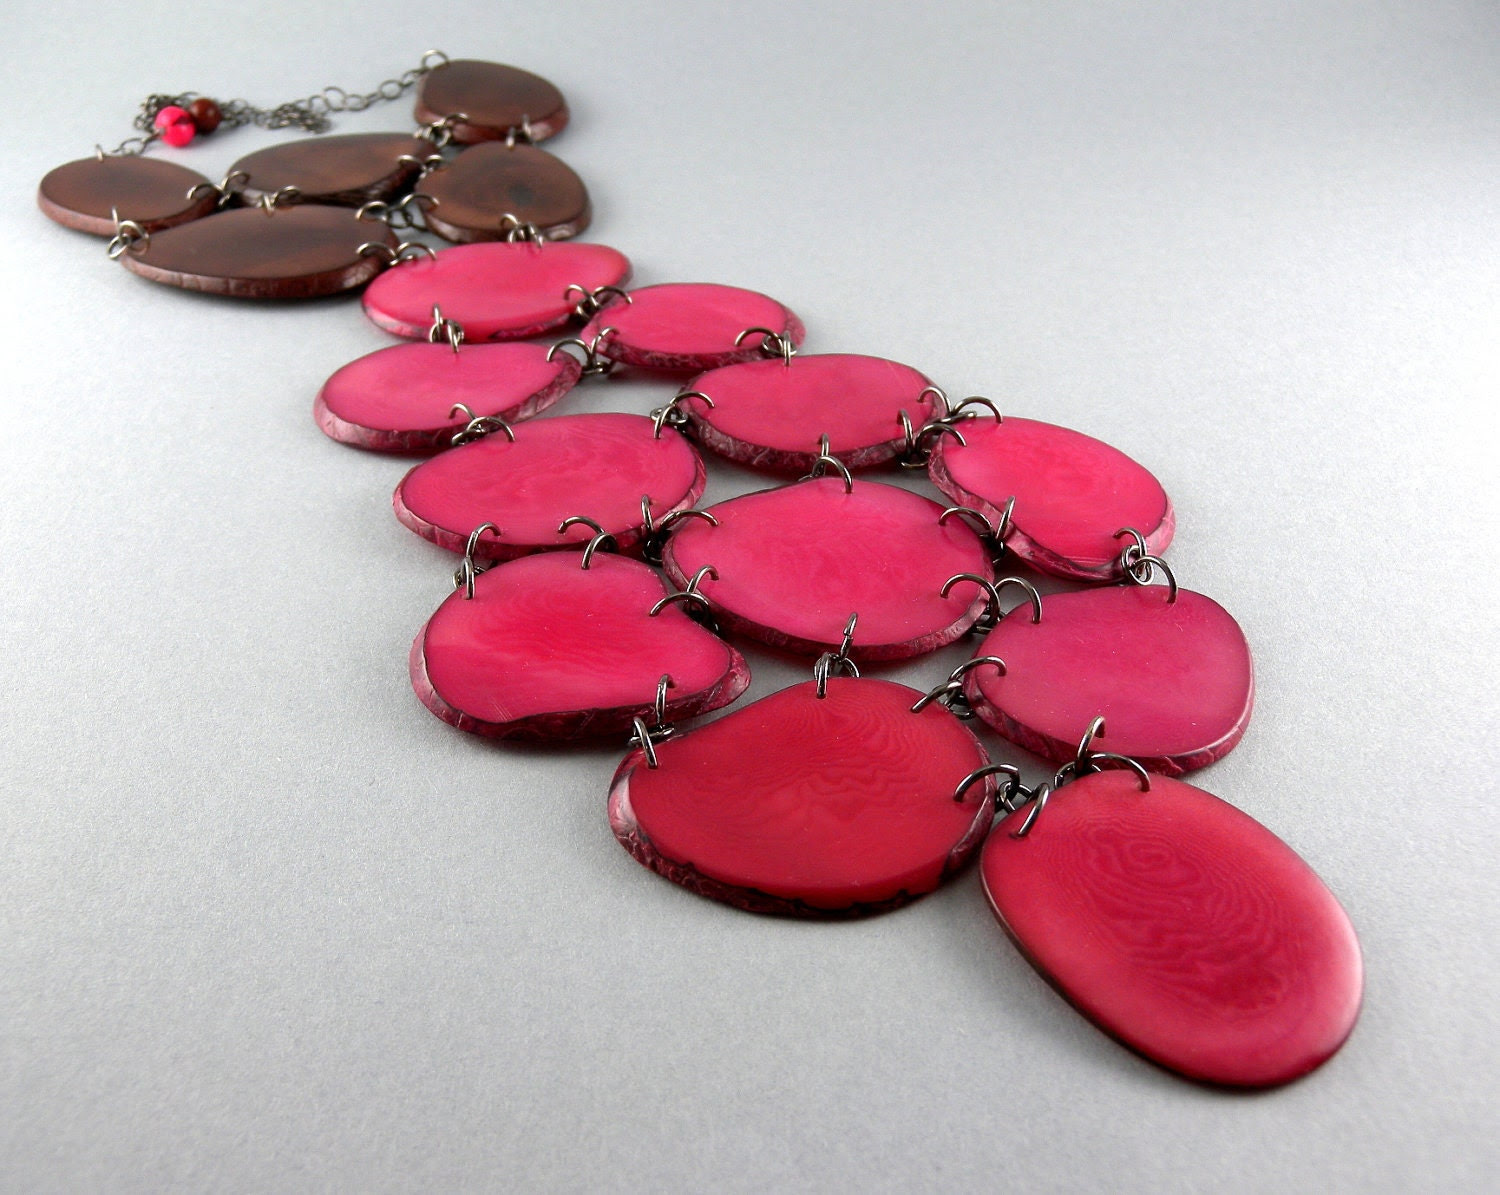 """Chocolate Cherry Eco Friendly Tagua Nut Tie Necklace with Free Shipping """"The Office"""" - decoratethediva"""